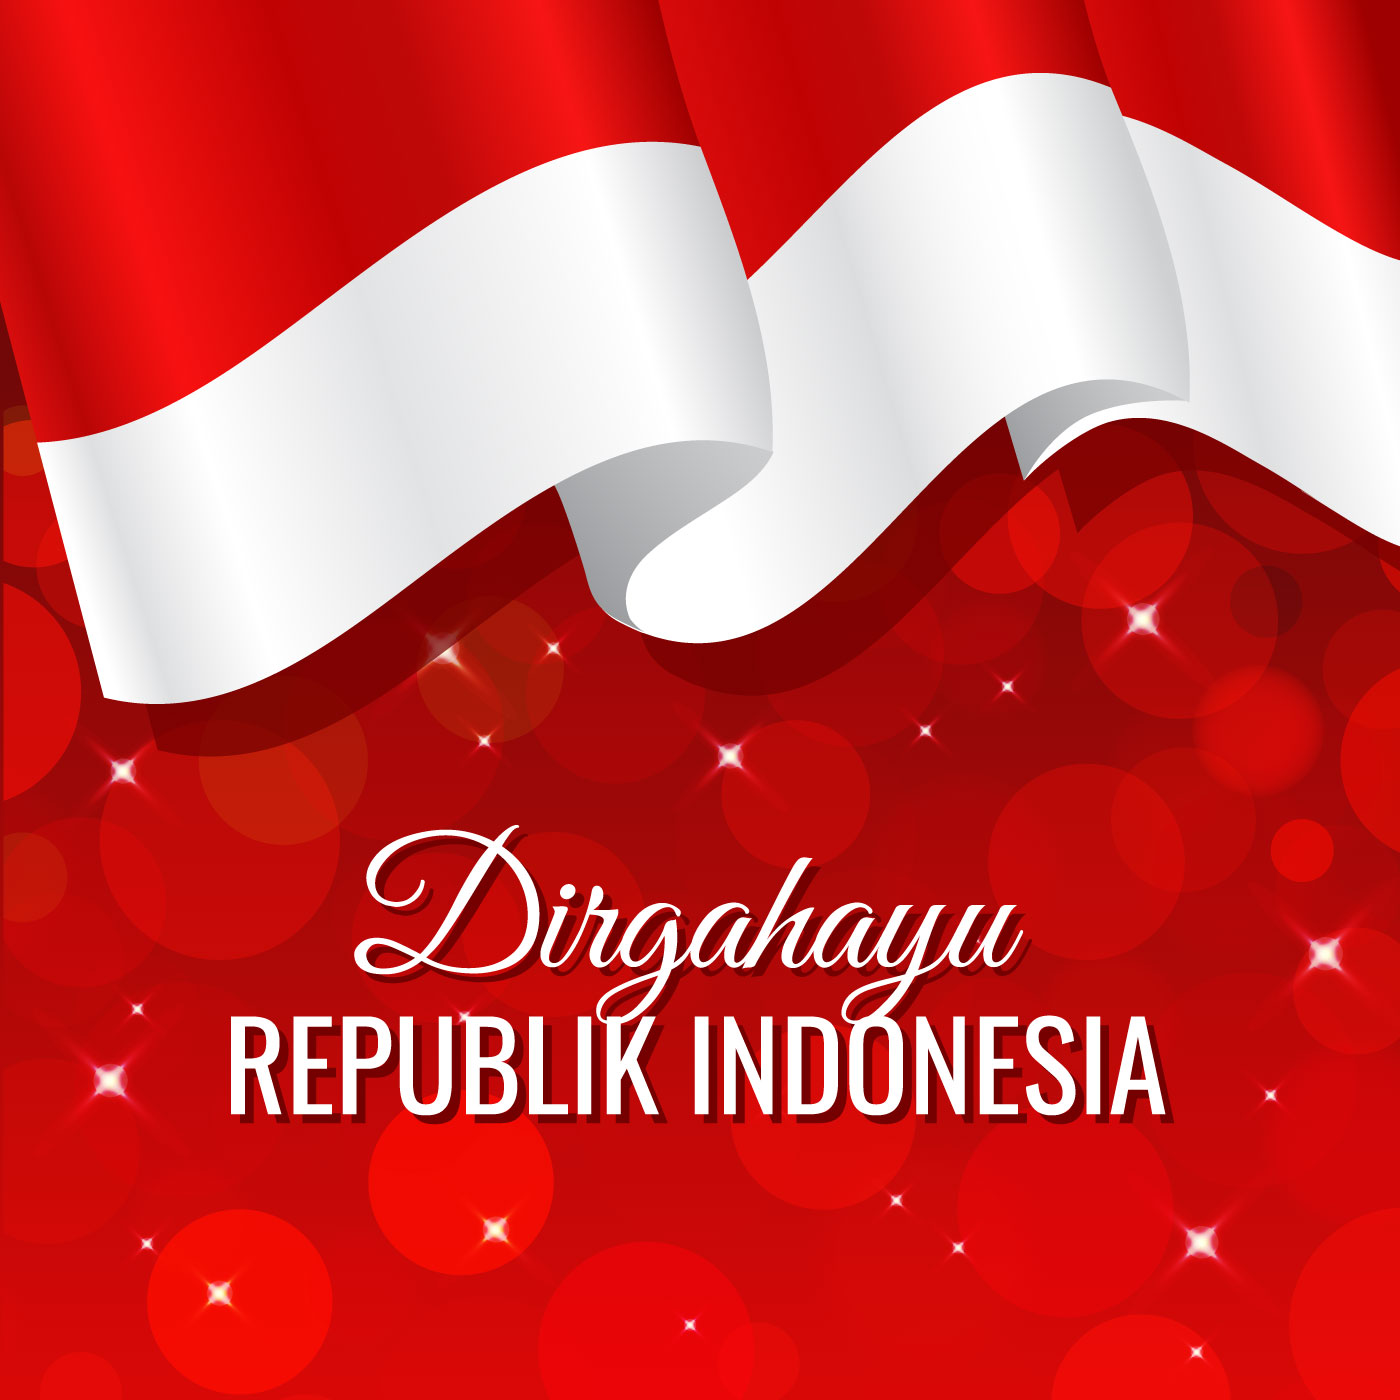 Indonesia Pride Flag Background Download Free Vectors Clipart